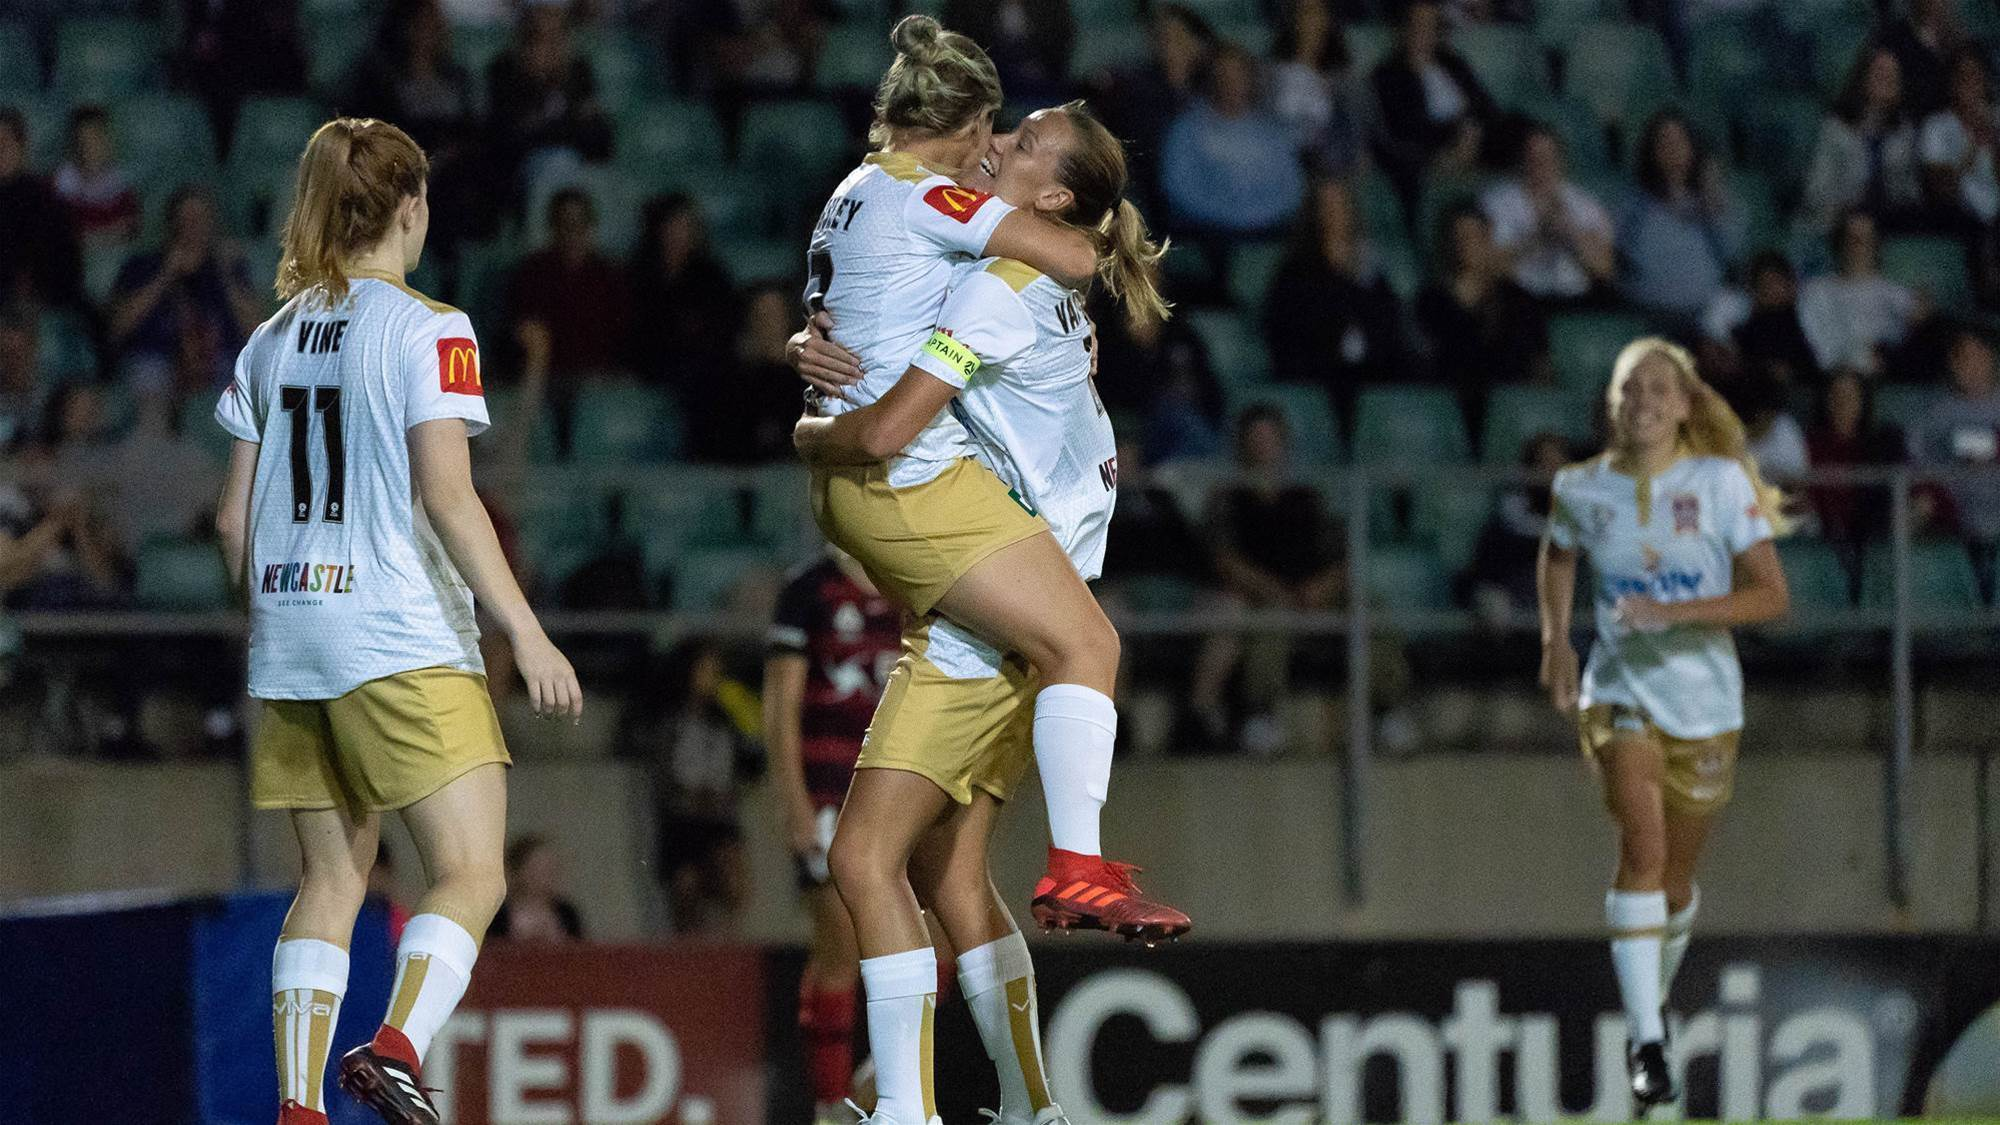 Wanderers go down to Jets